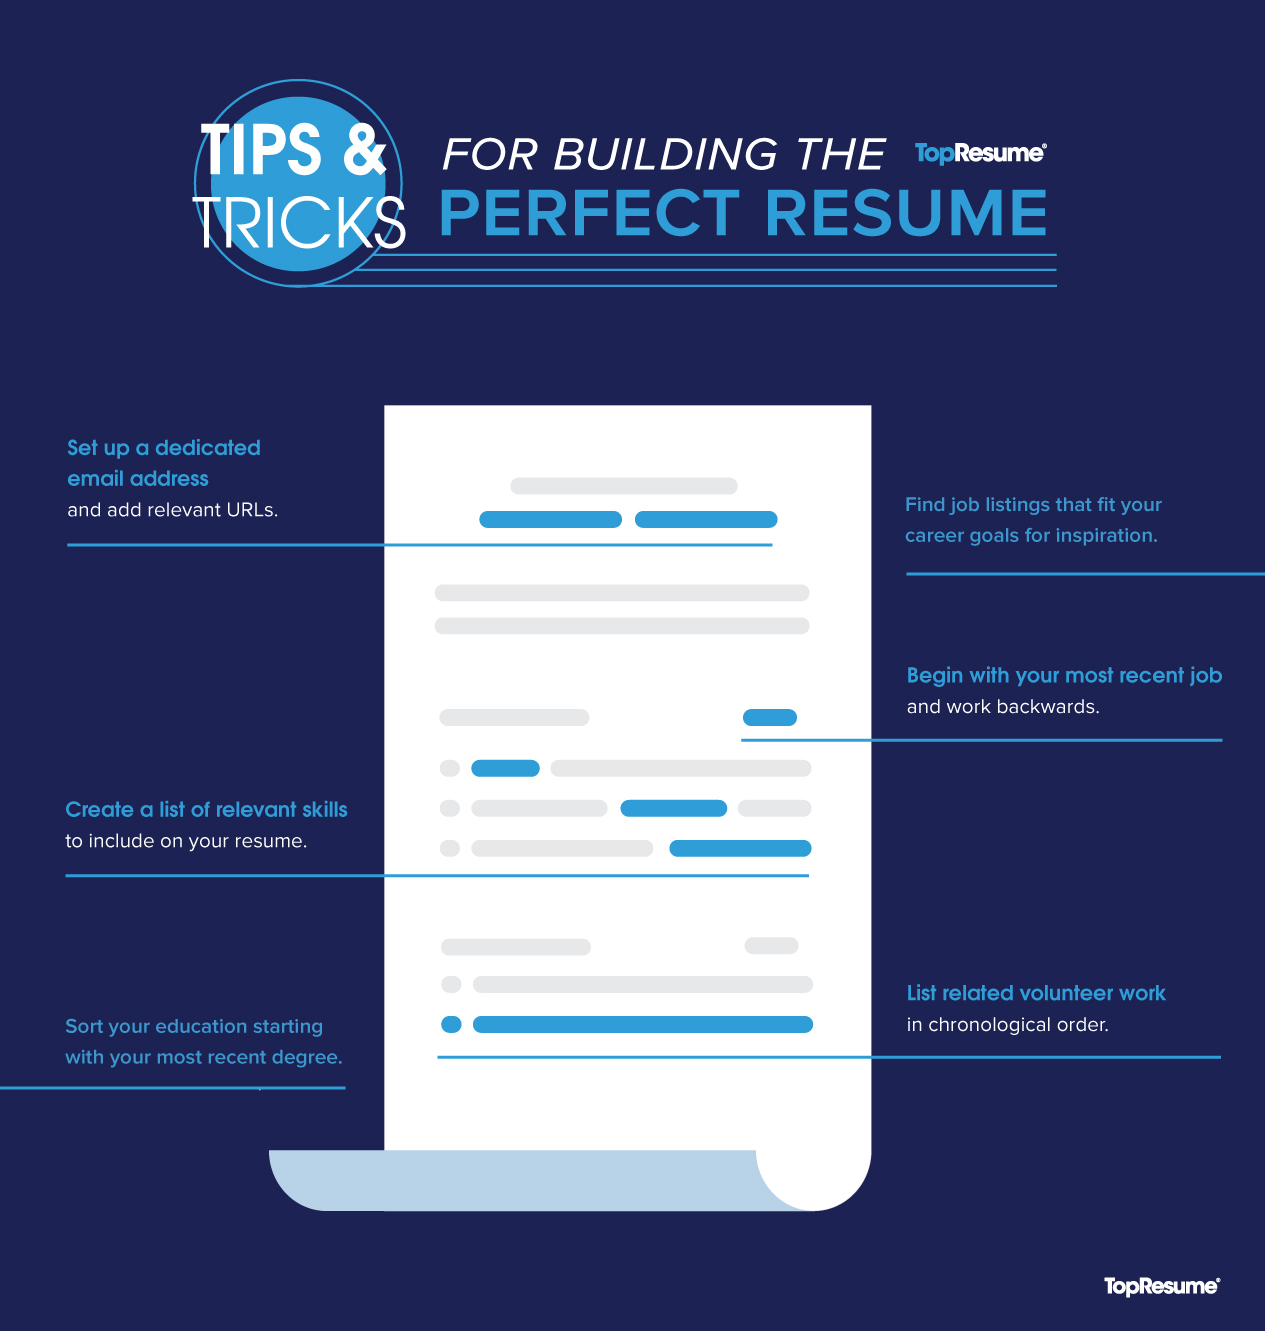 steps to writing the perfect resume topresume process 11stepsinfographic grad school Resume Resume Writing Process Steps